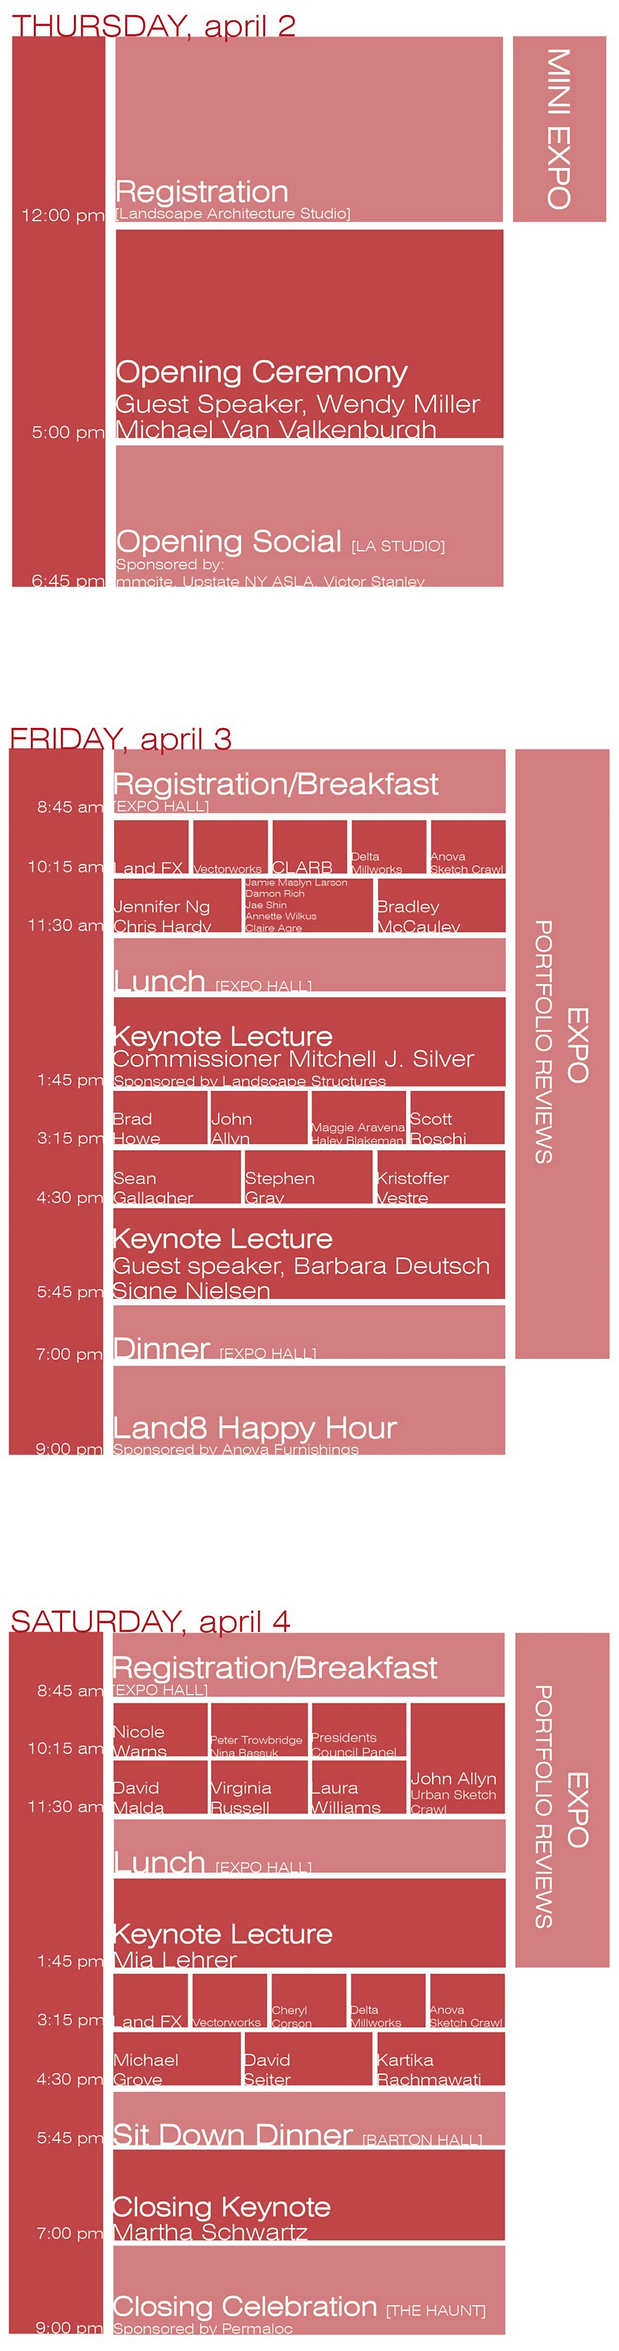 new schedule combined-1.png